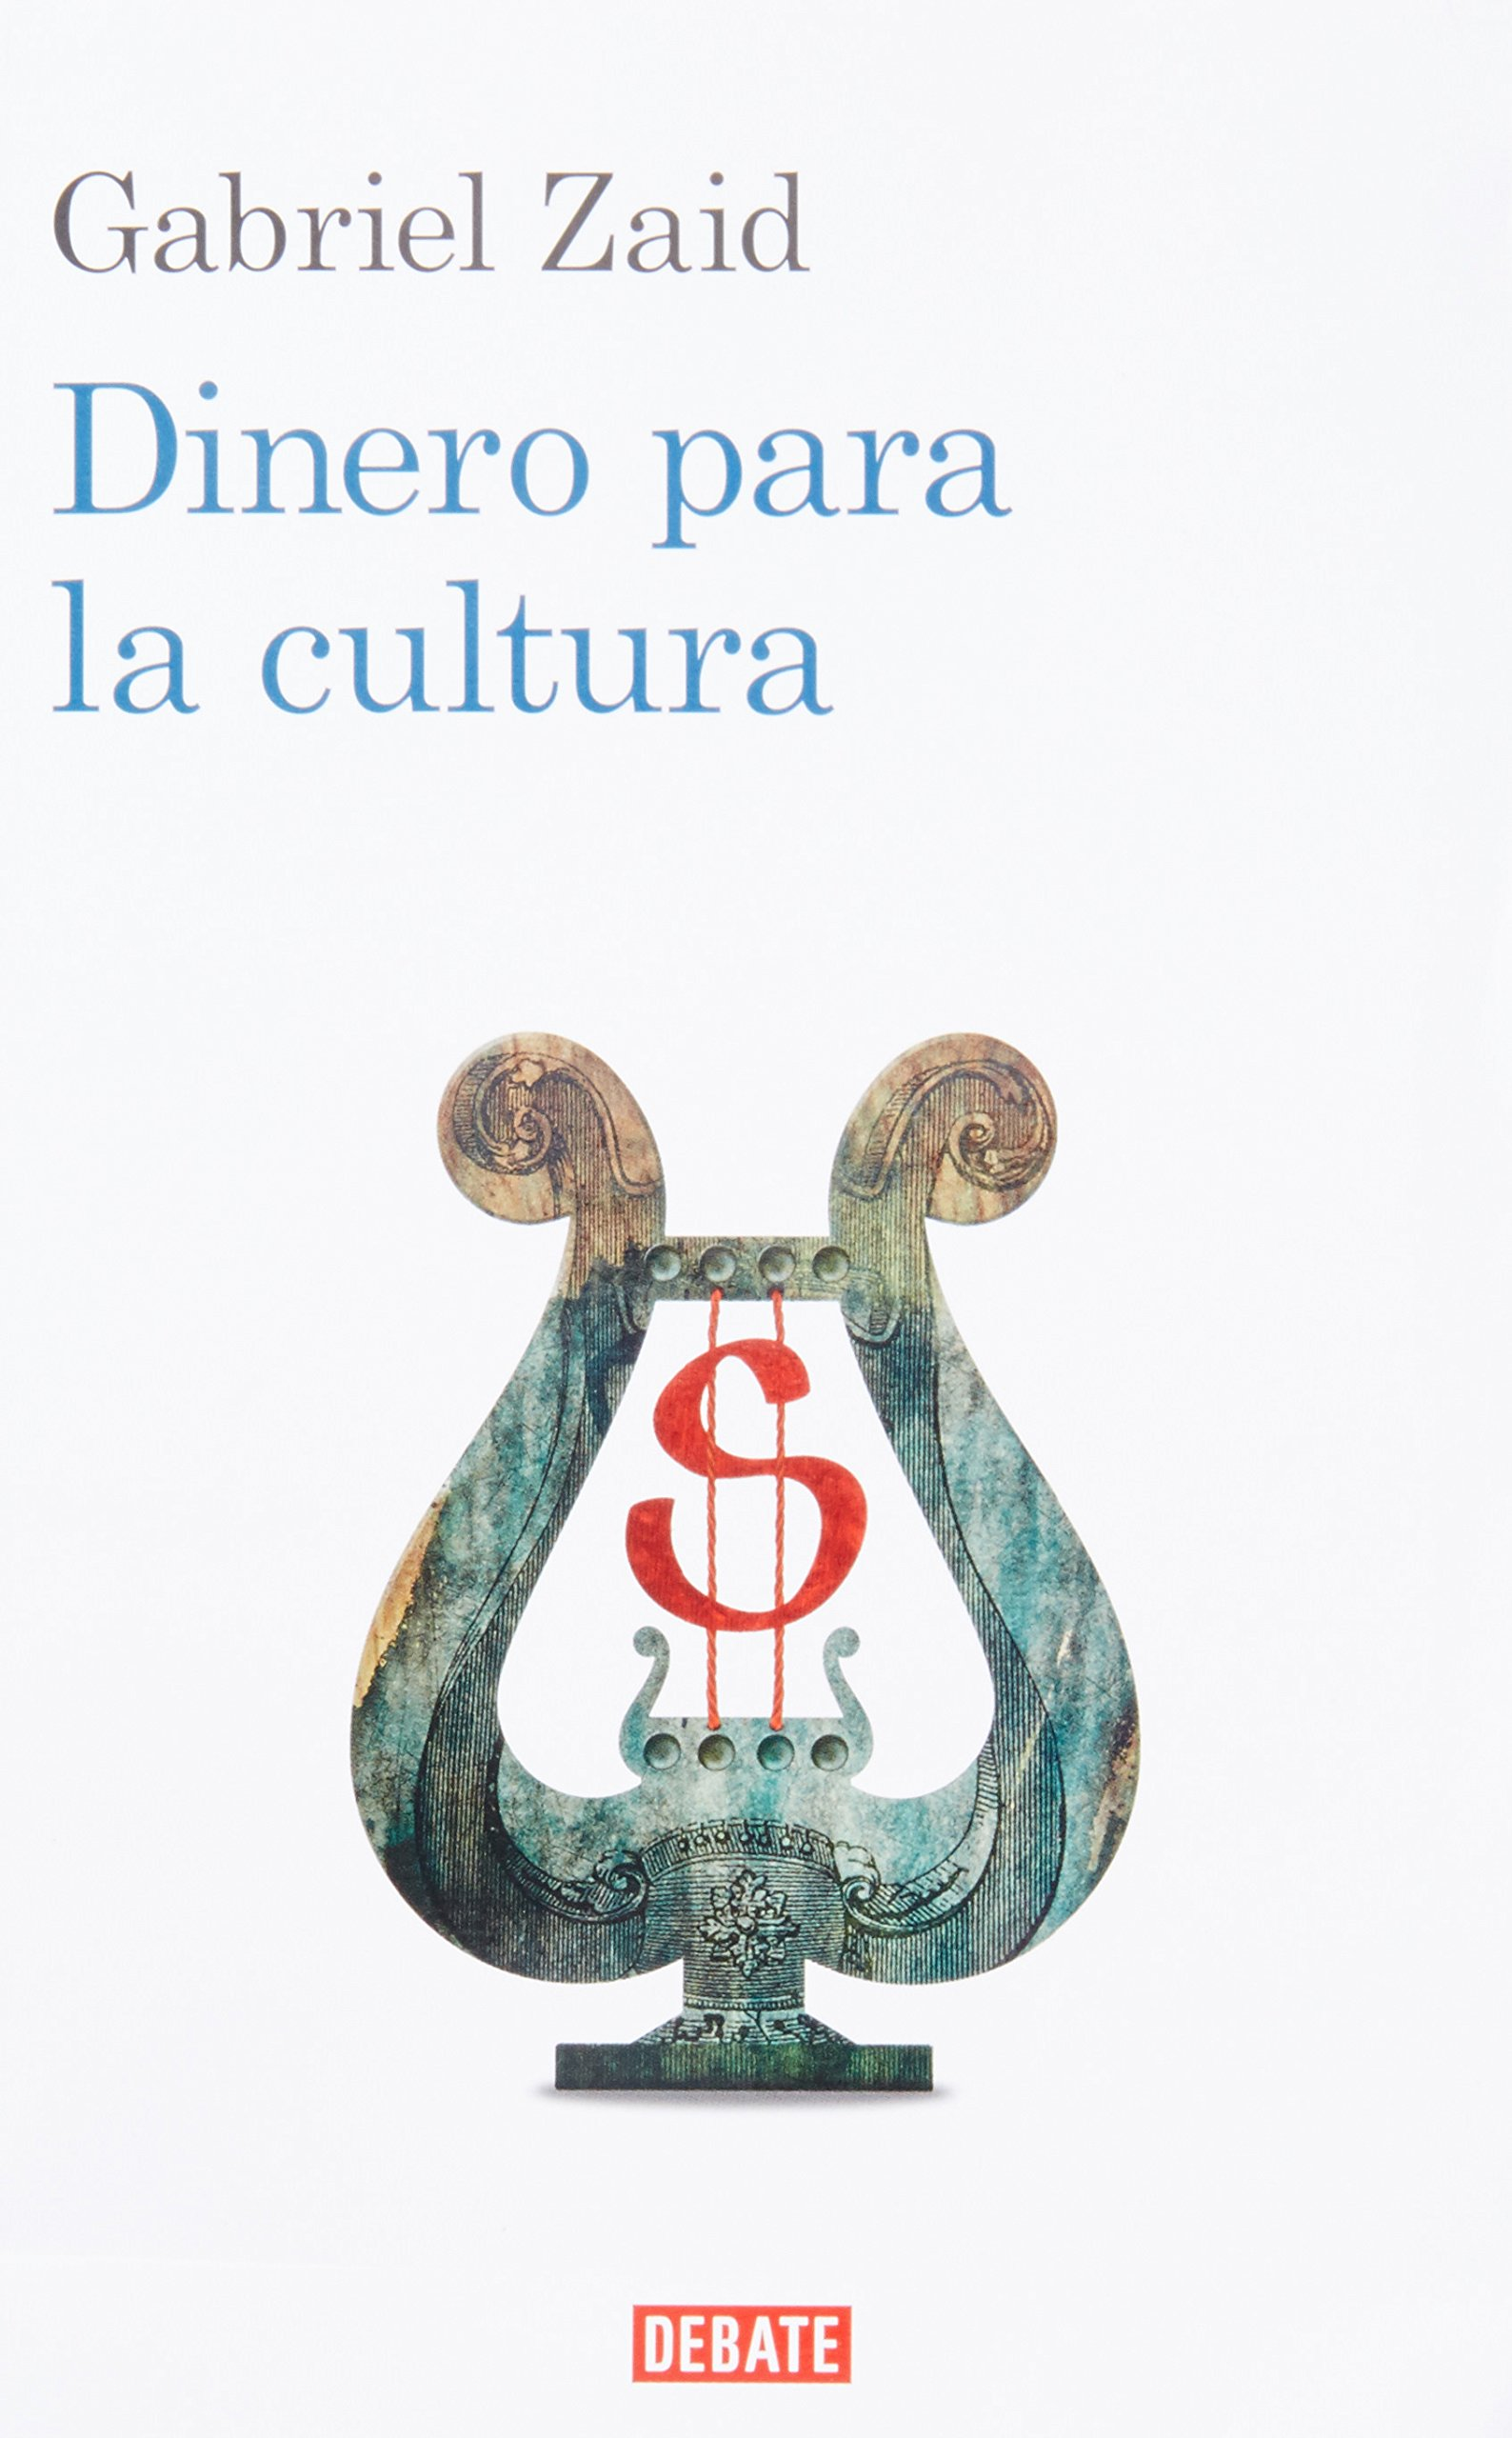 Dinero para la cultura (Spanish Edition): Gabriel Zaid: 9786073115704: Amazon.com: Books